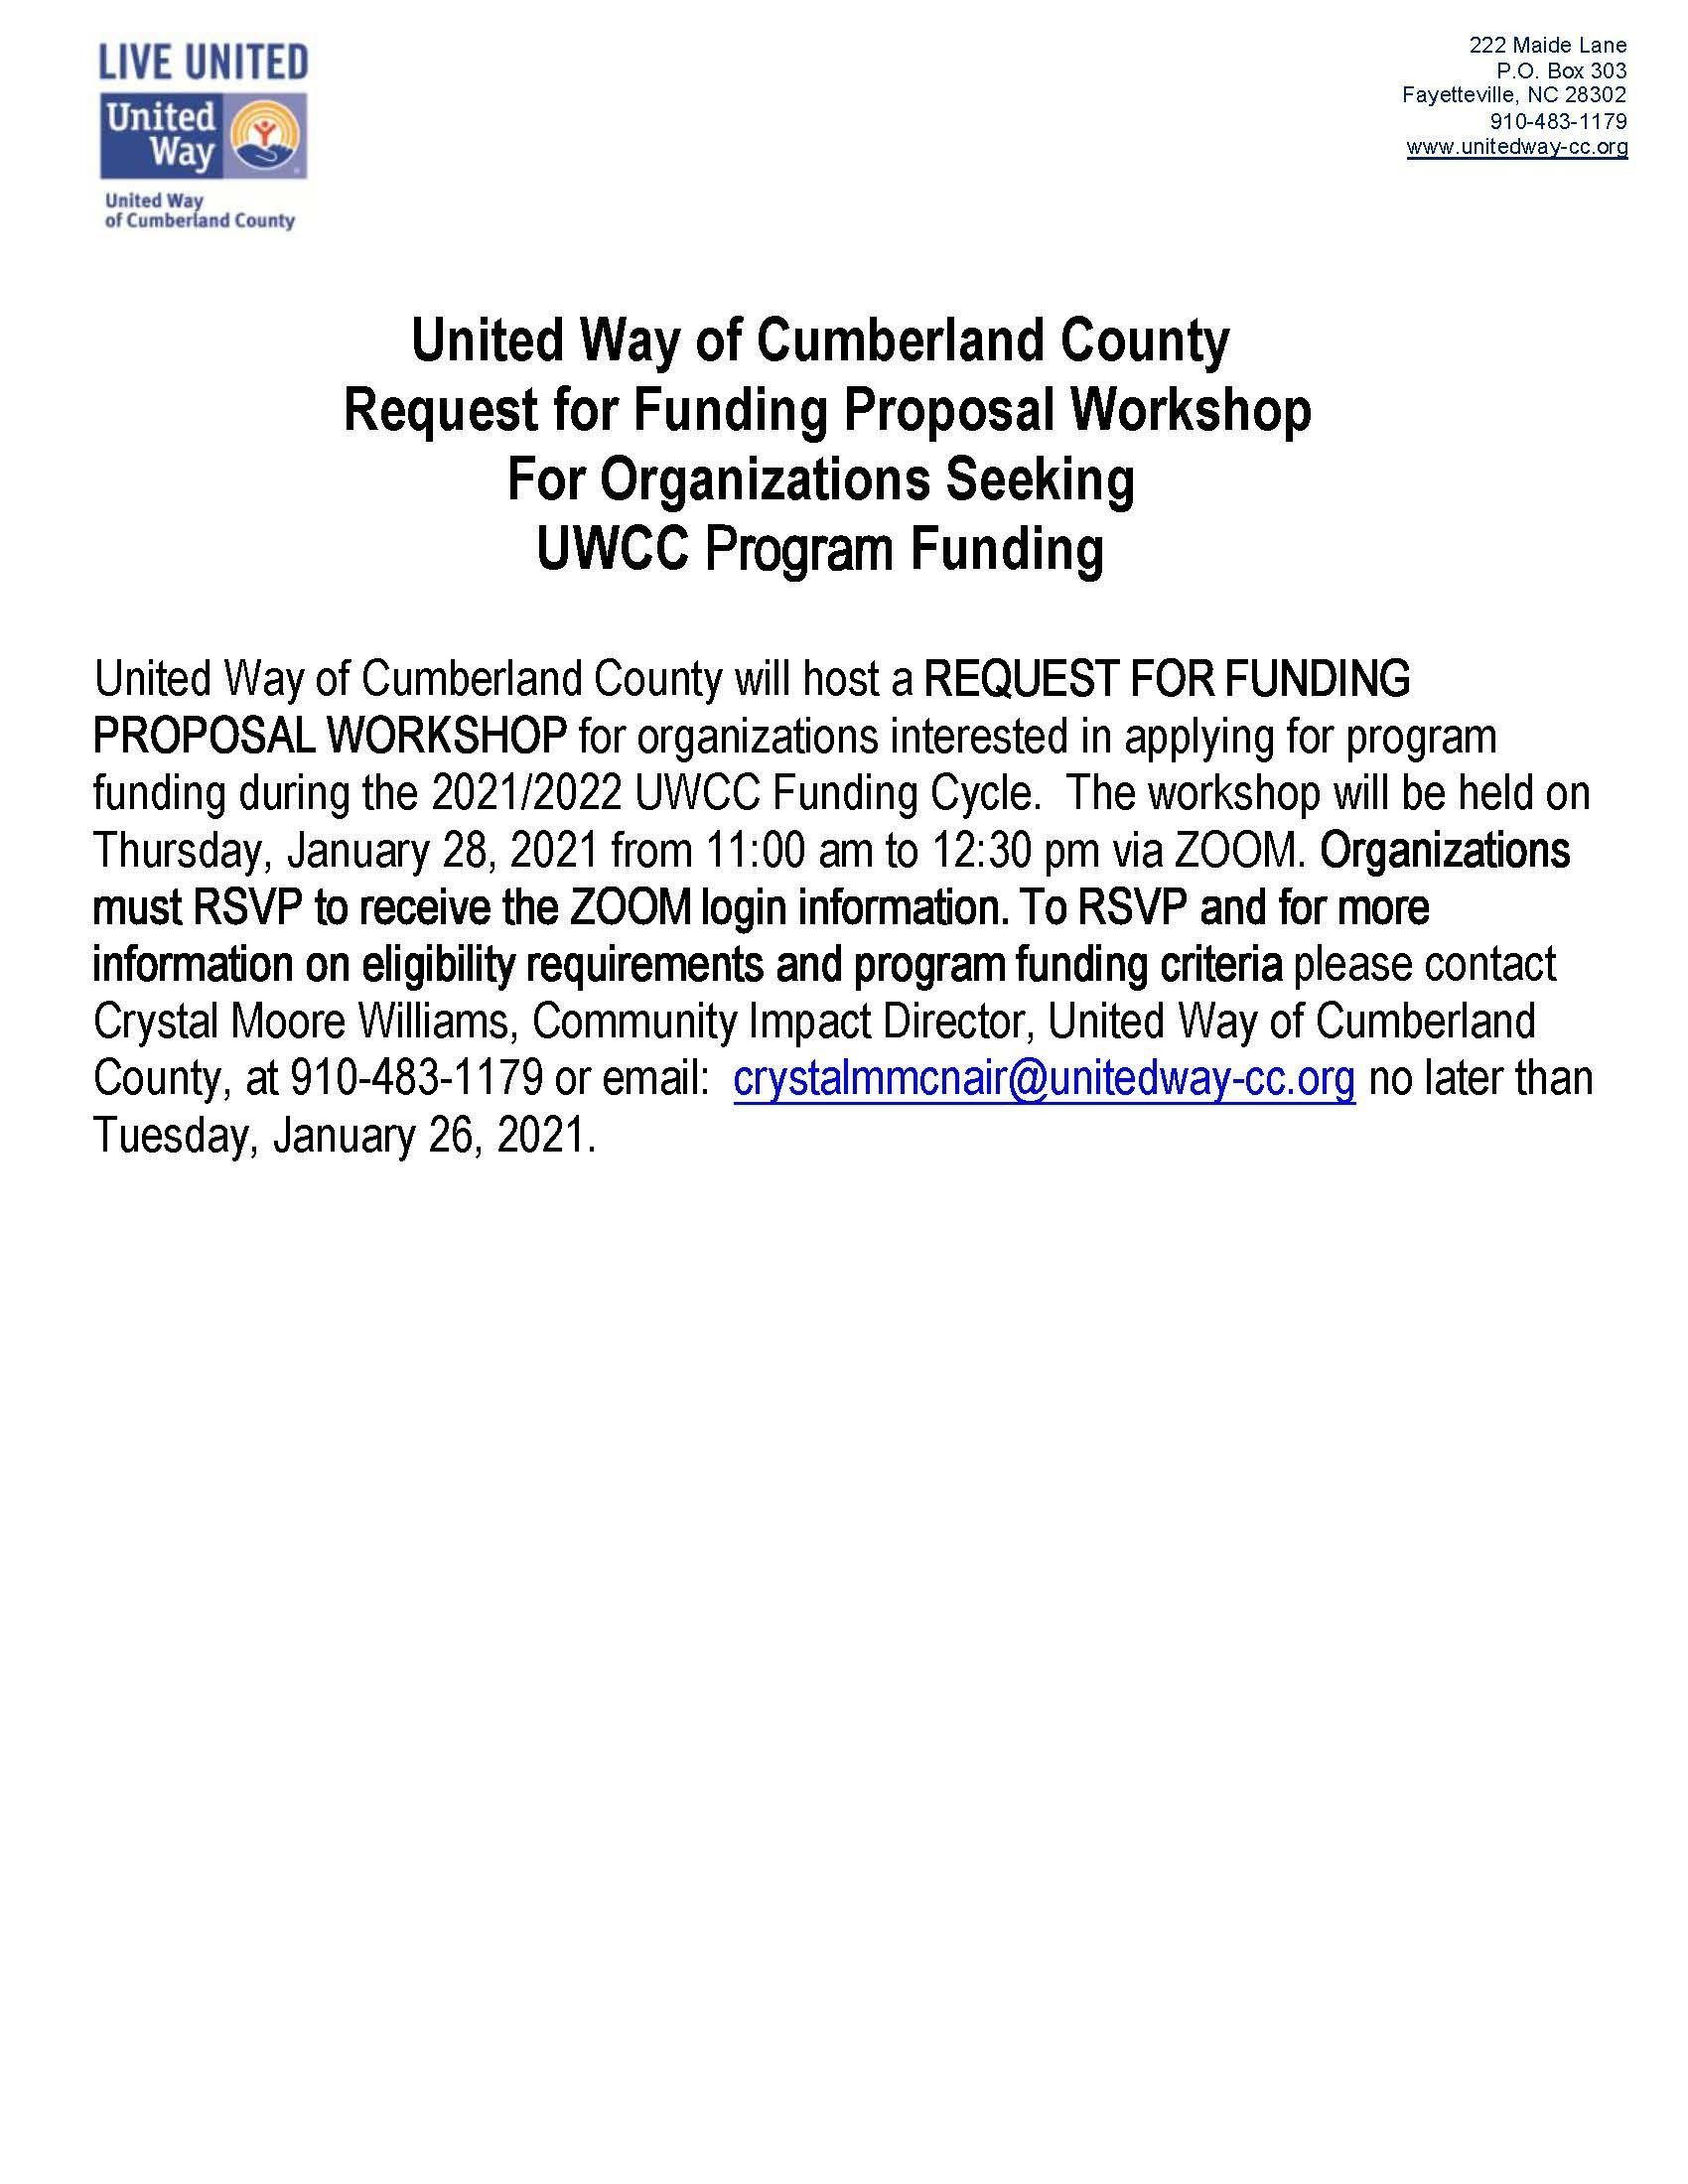 Request for Funding Proposal Workshop